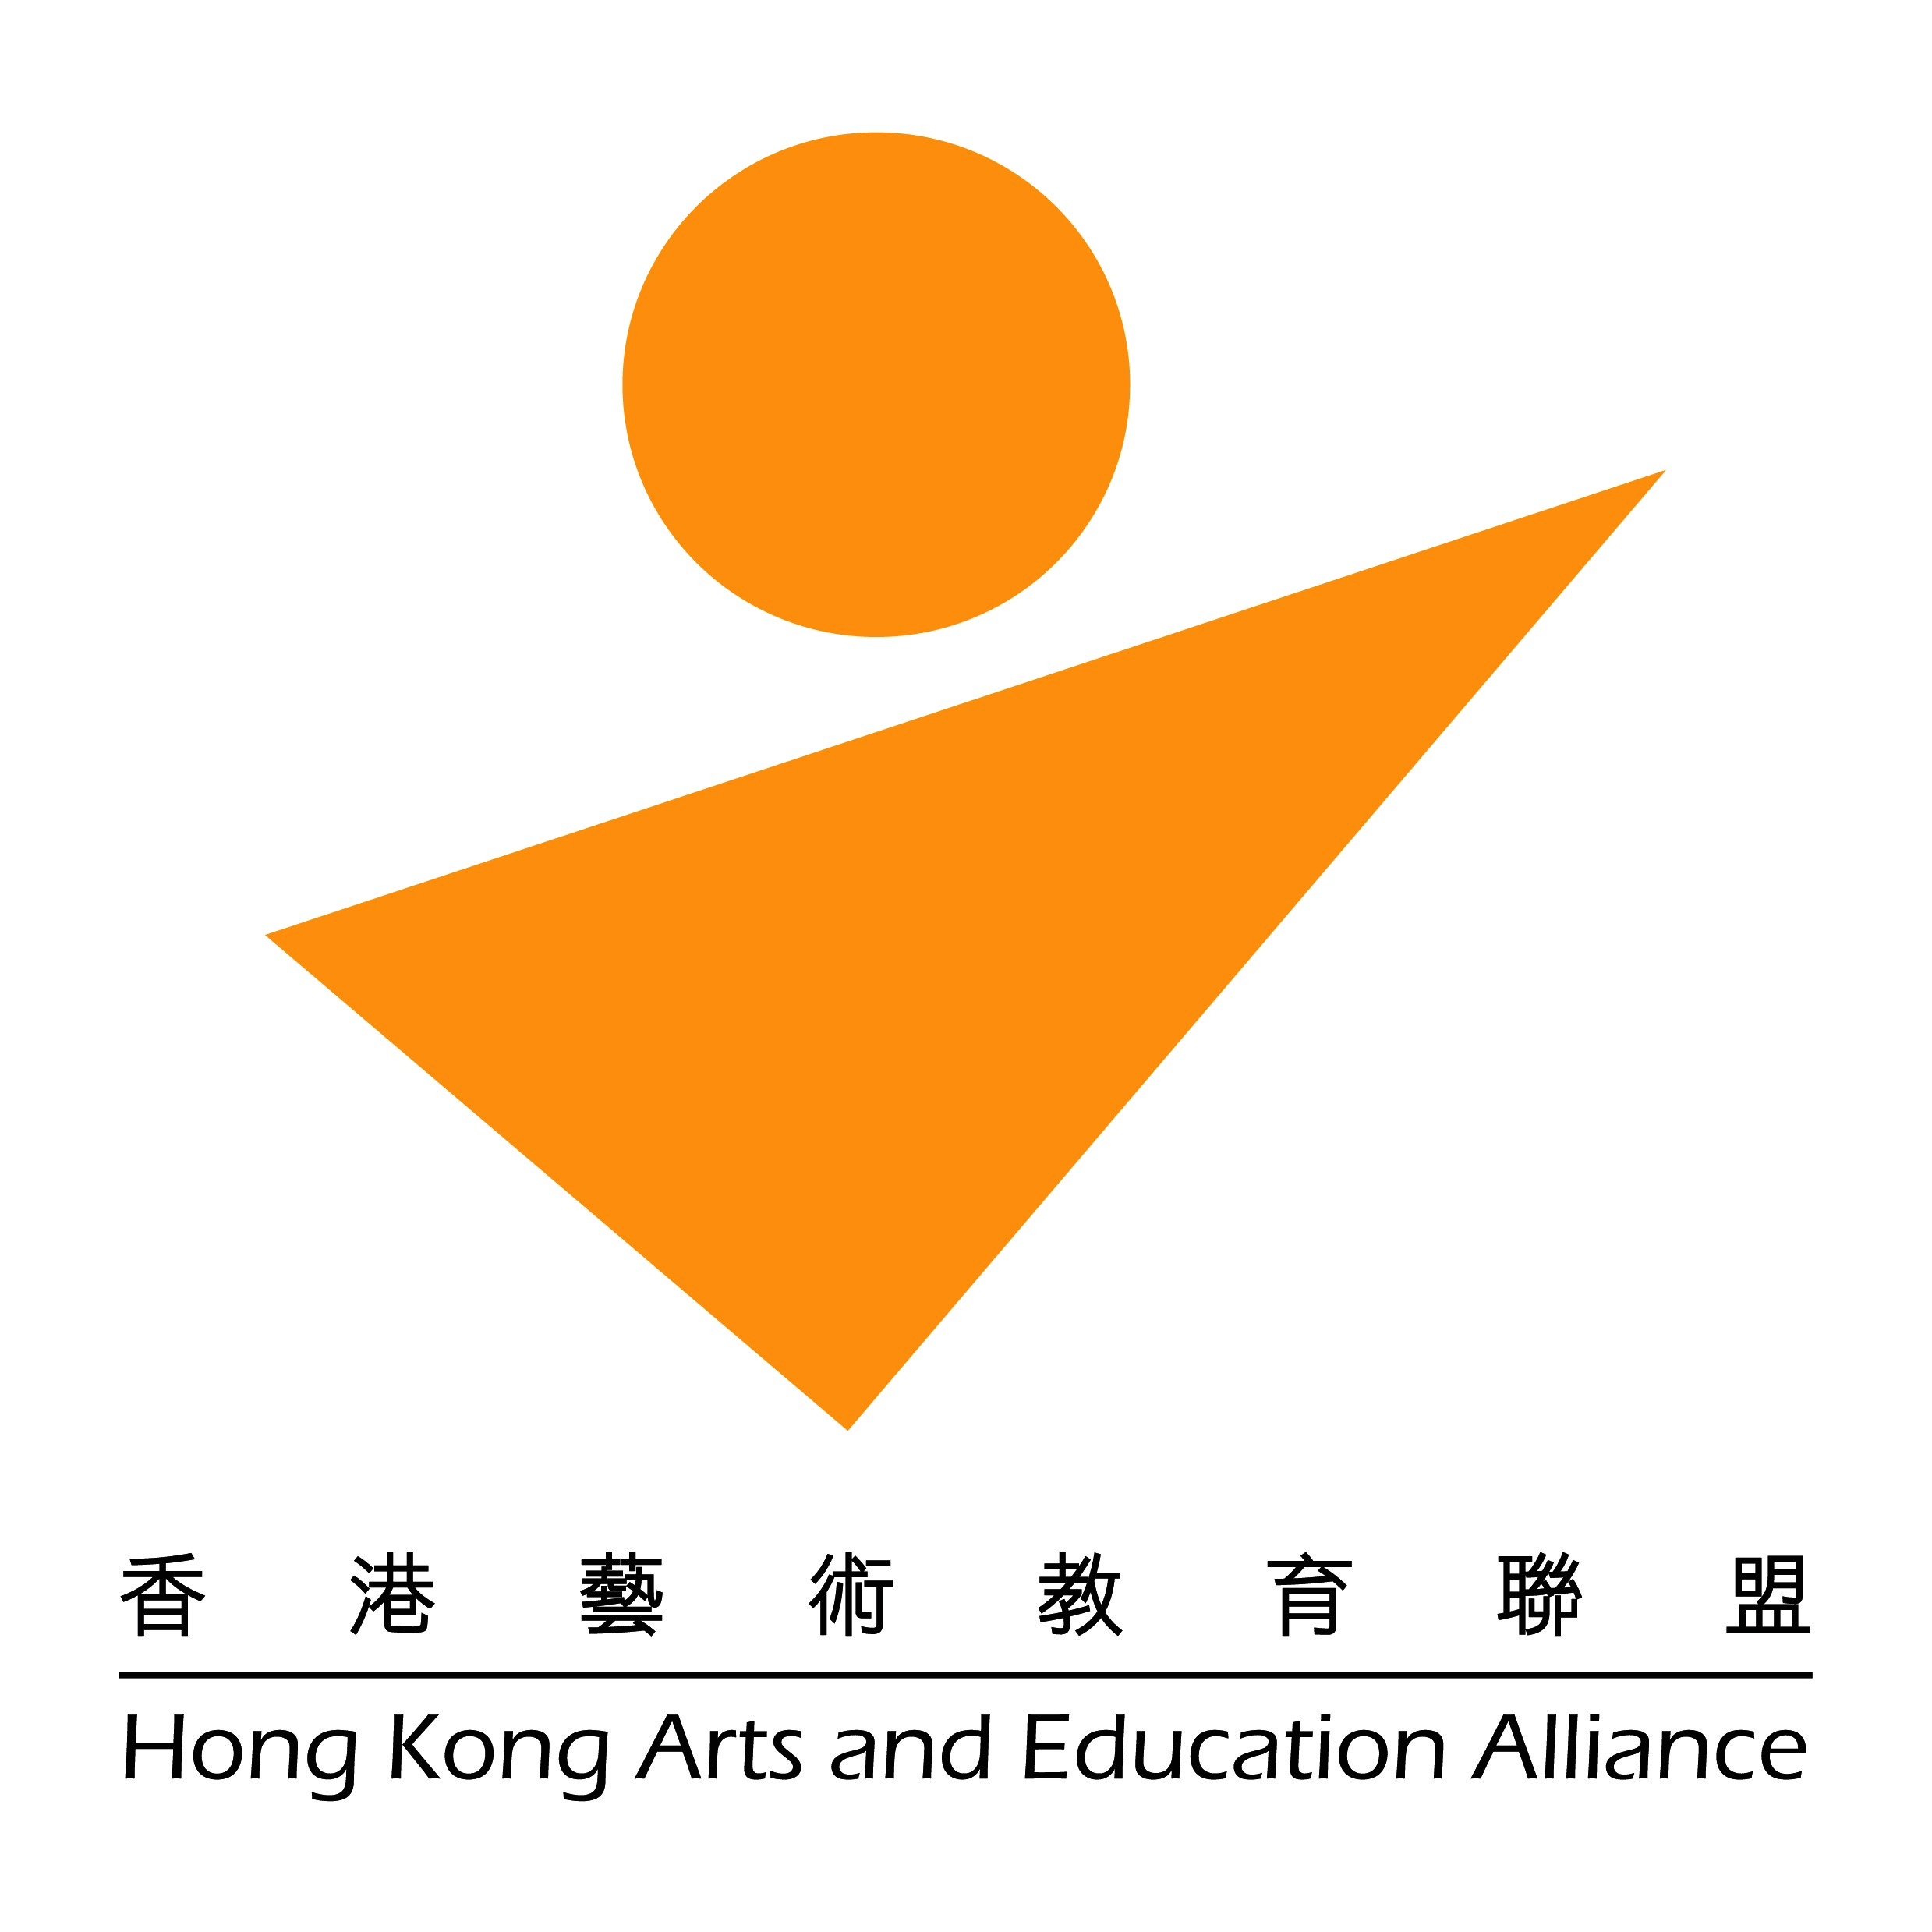 Hong Kong Arts and Education Alliance